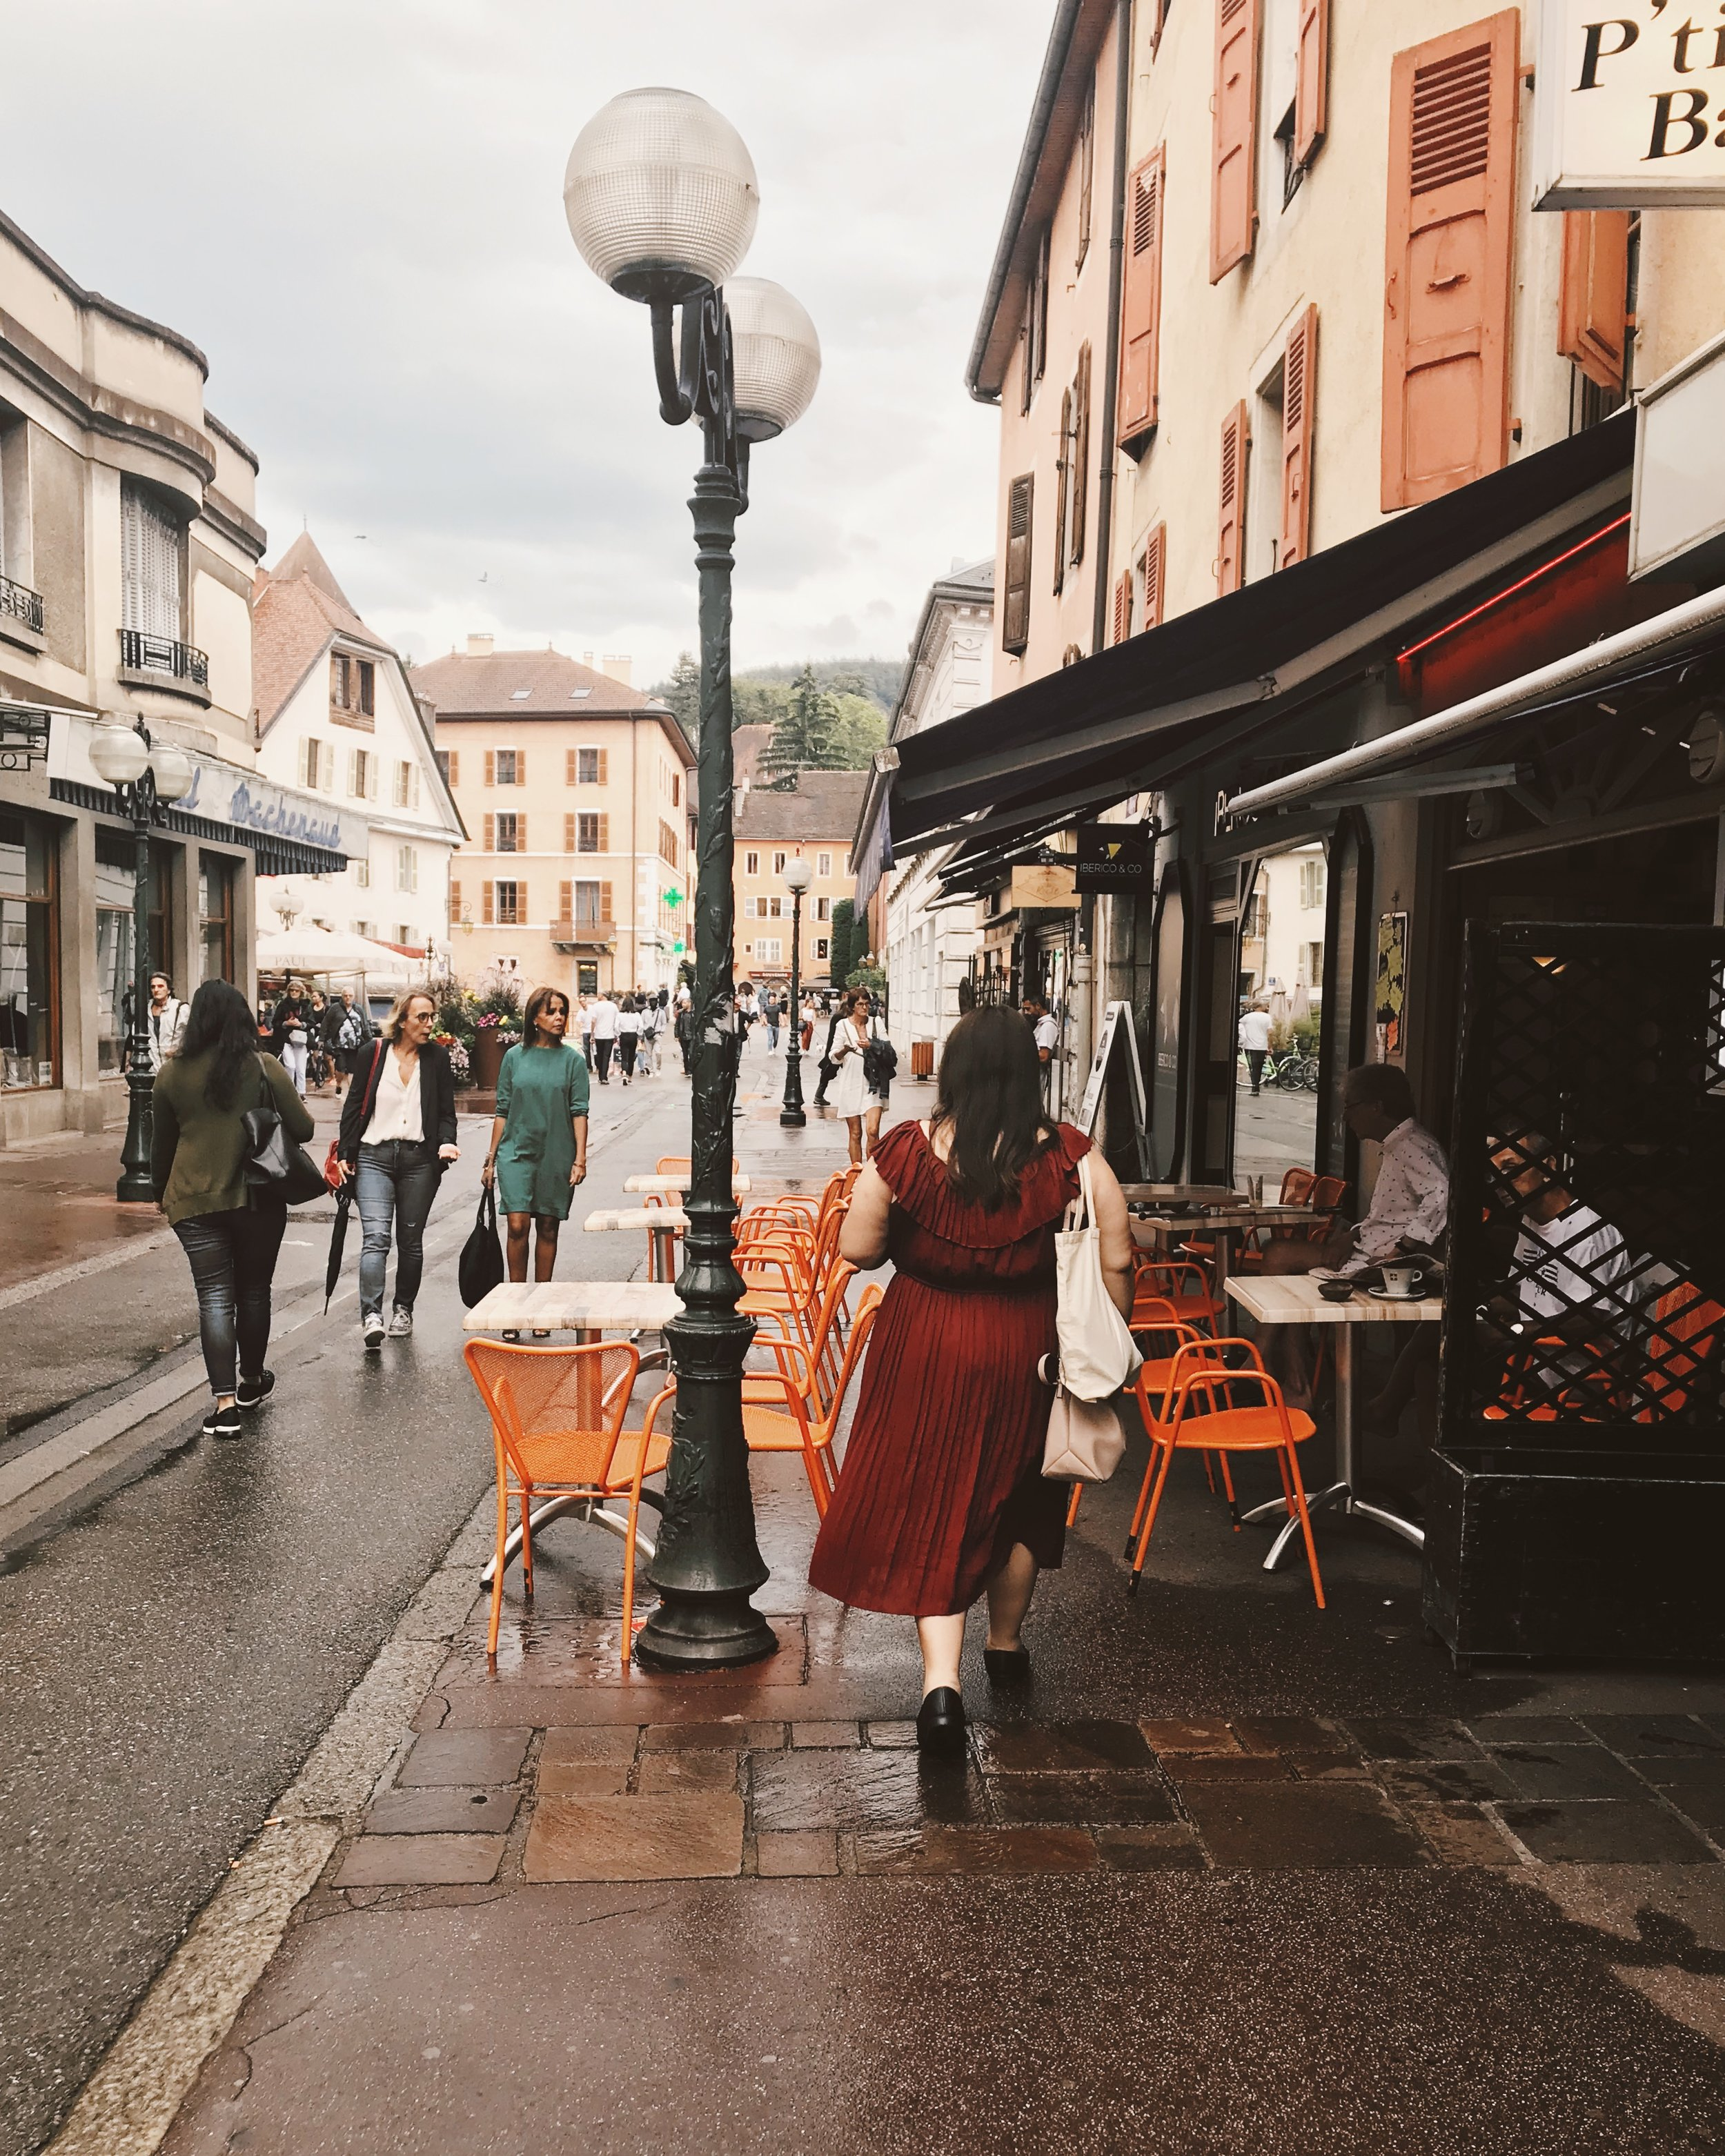 The writer, strolling through France last year. Photo by Olivia Gündüz-Willemin.